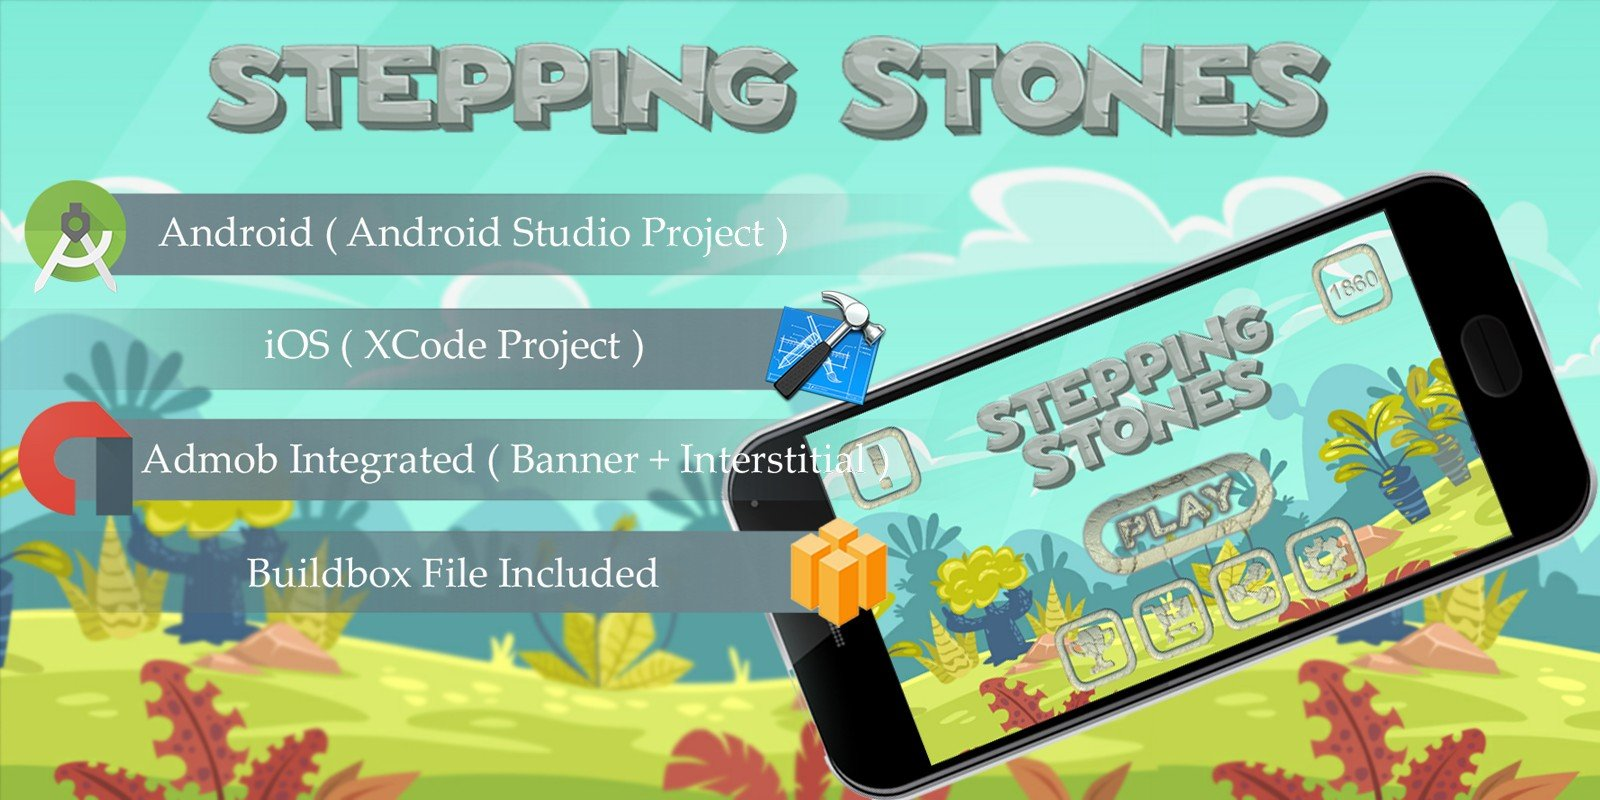 Stepping stones buildbox template arcade game templates for stepping stones buildbox template maxwellsz